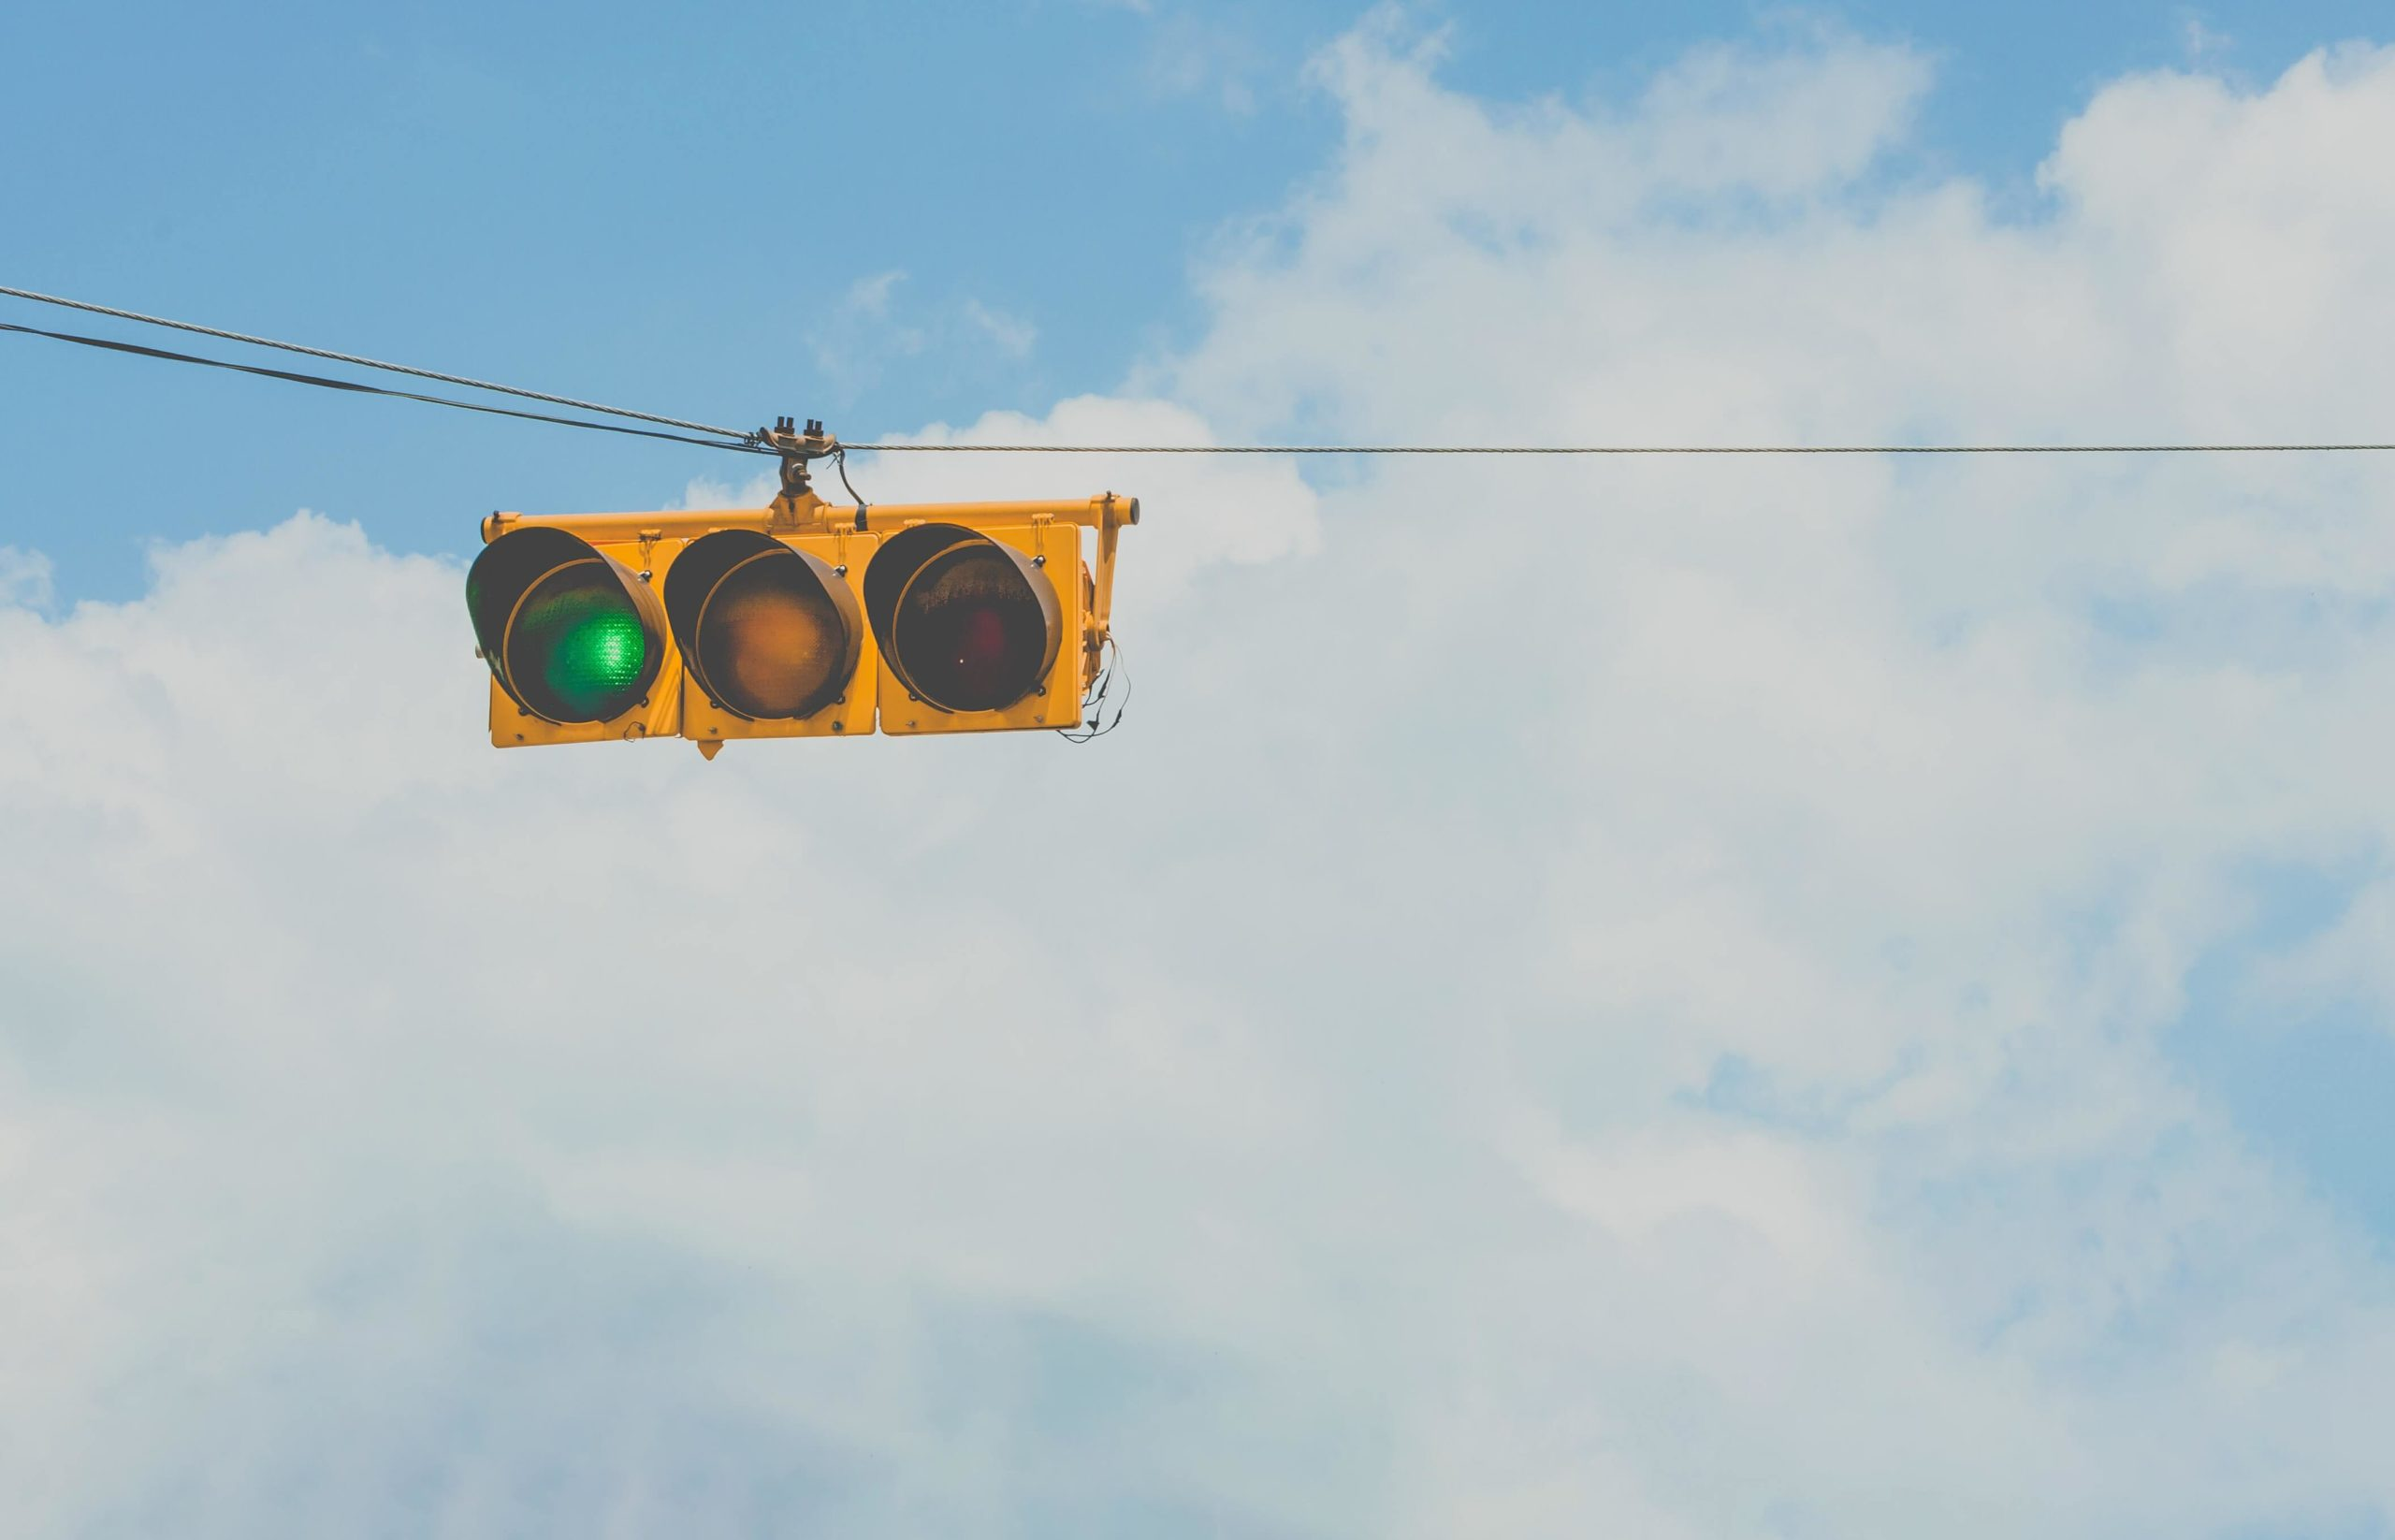 A traffic signal with a green light, which signifies loan officers can speed up the mortgage process.